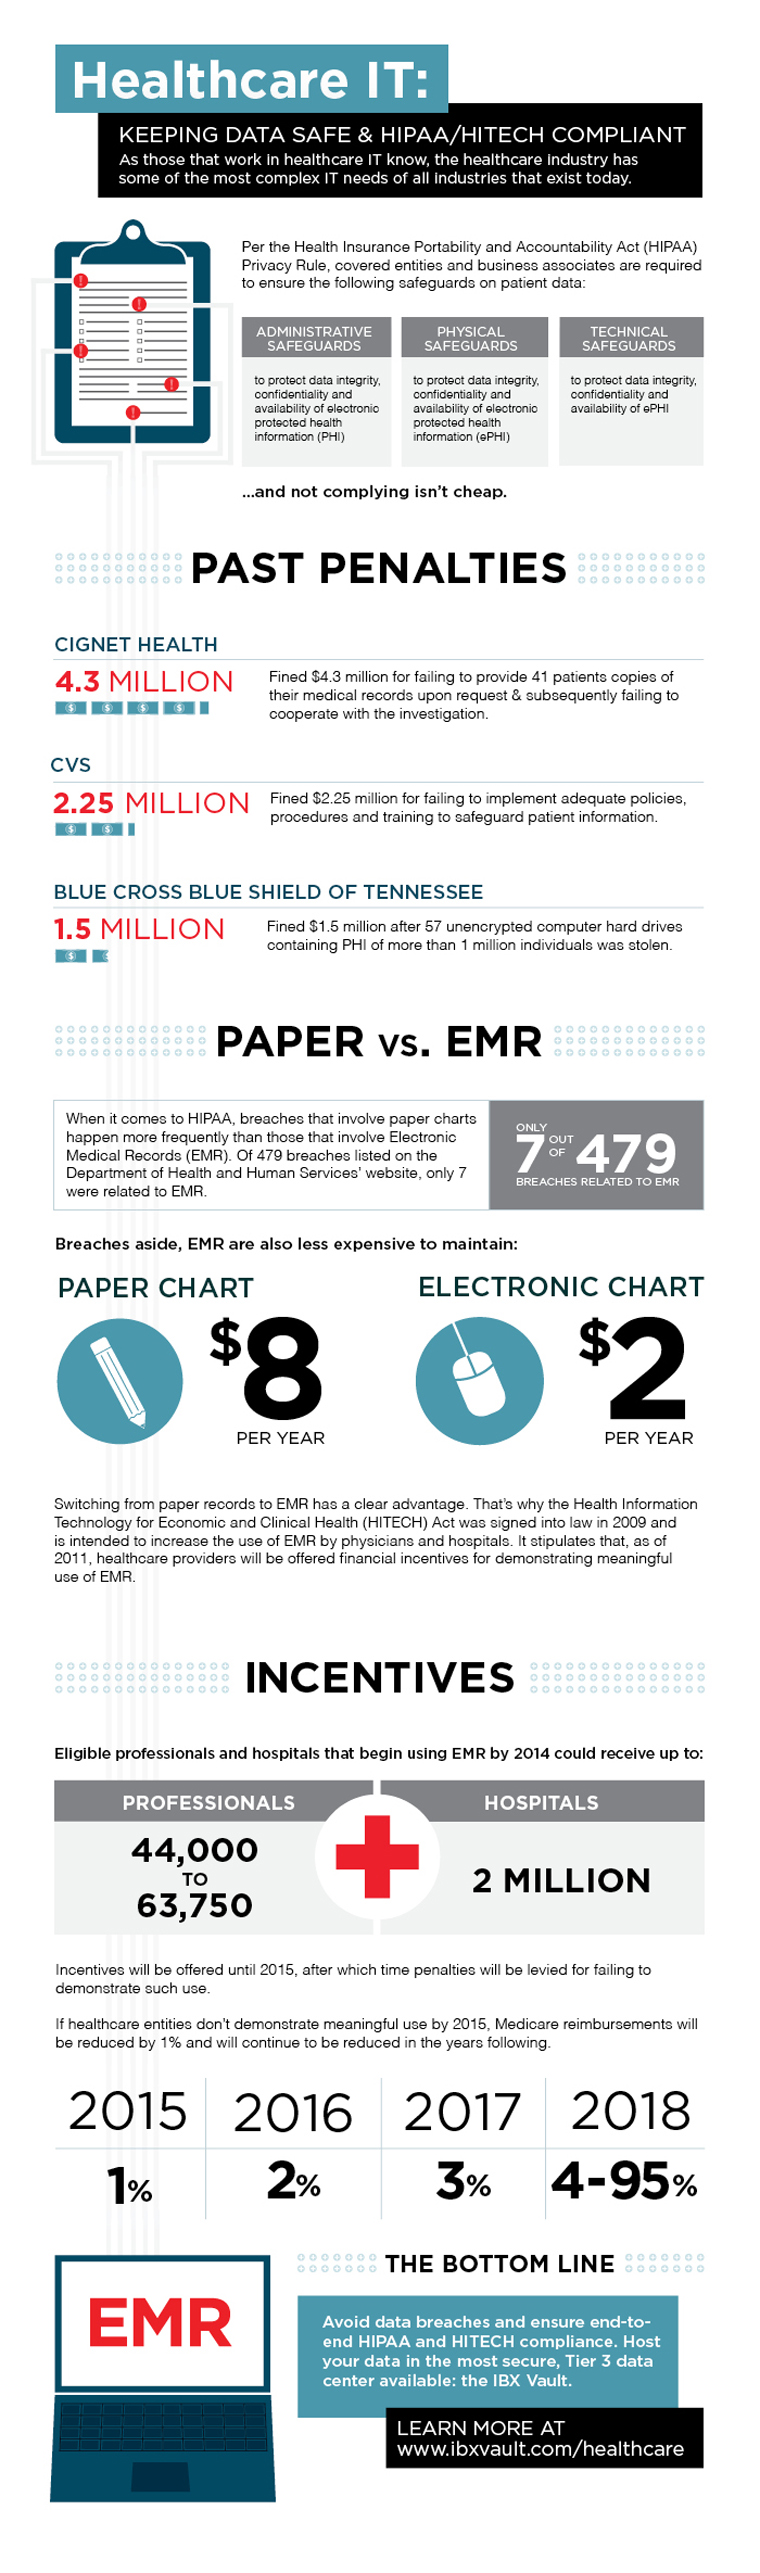 Healthcare IT infographic